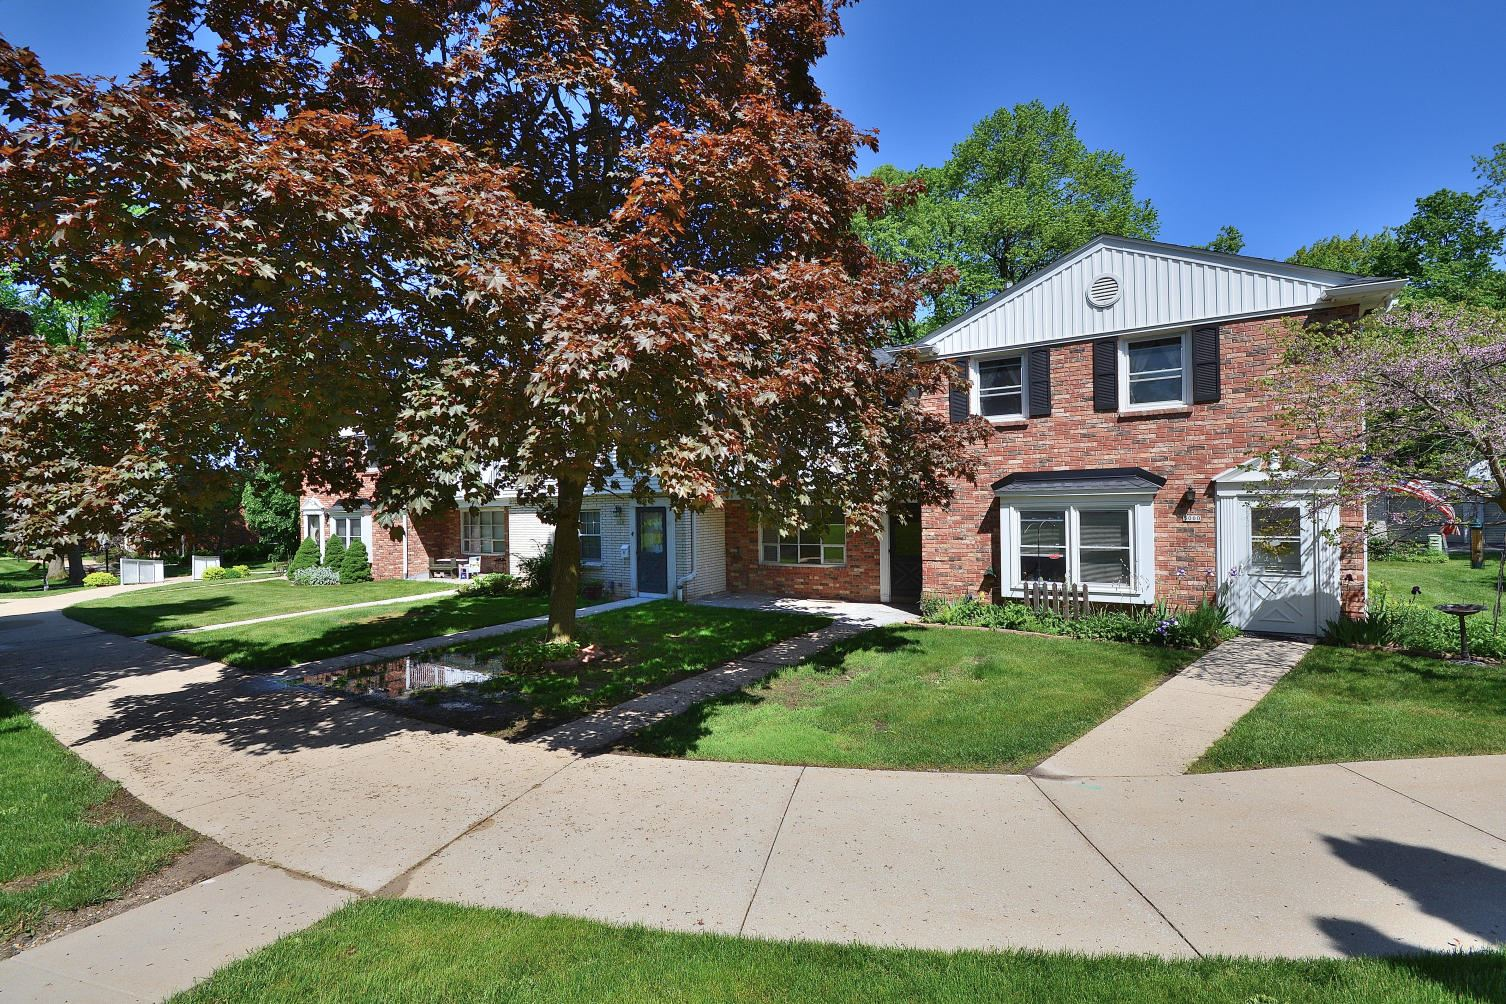 5002 W Colonial Ct, Greenfield, WI 53220 - #: 1691483